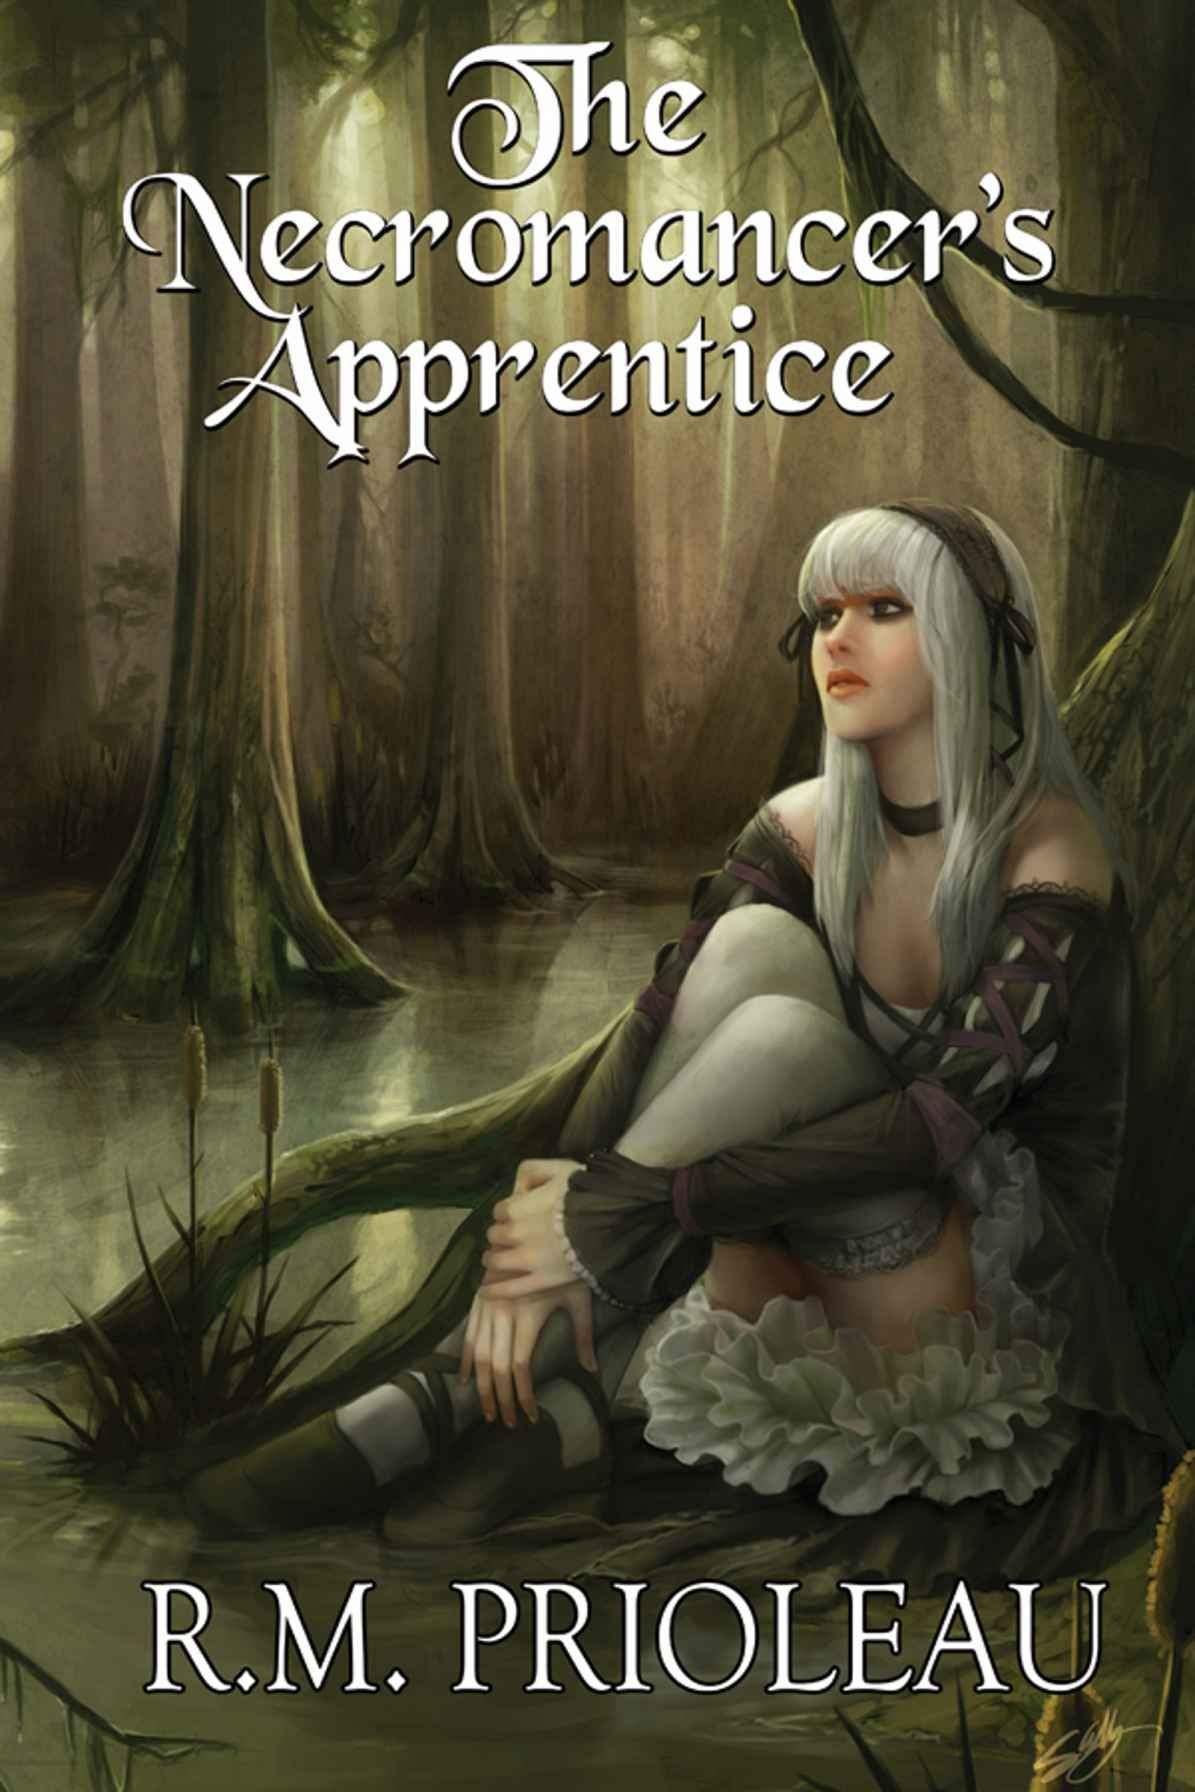 Amazon: The Necromancer's Apprentice Ebook: Rm Prioleau: Kindle Store